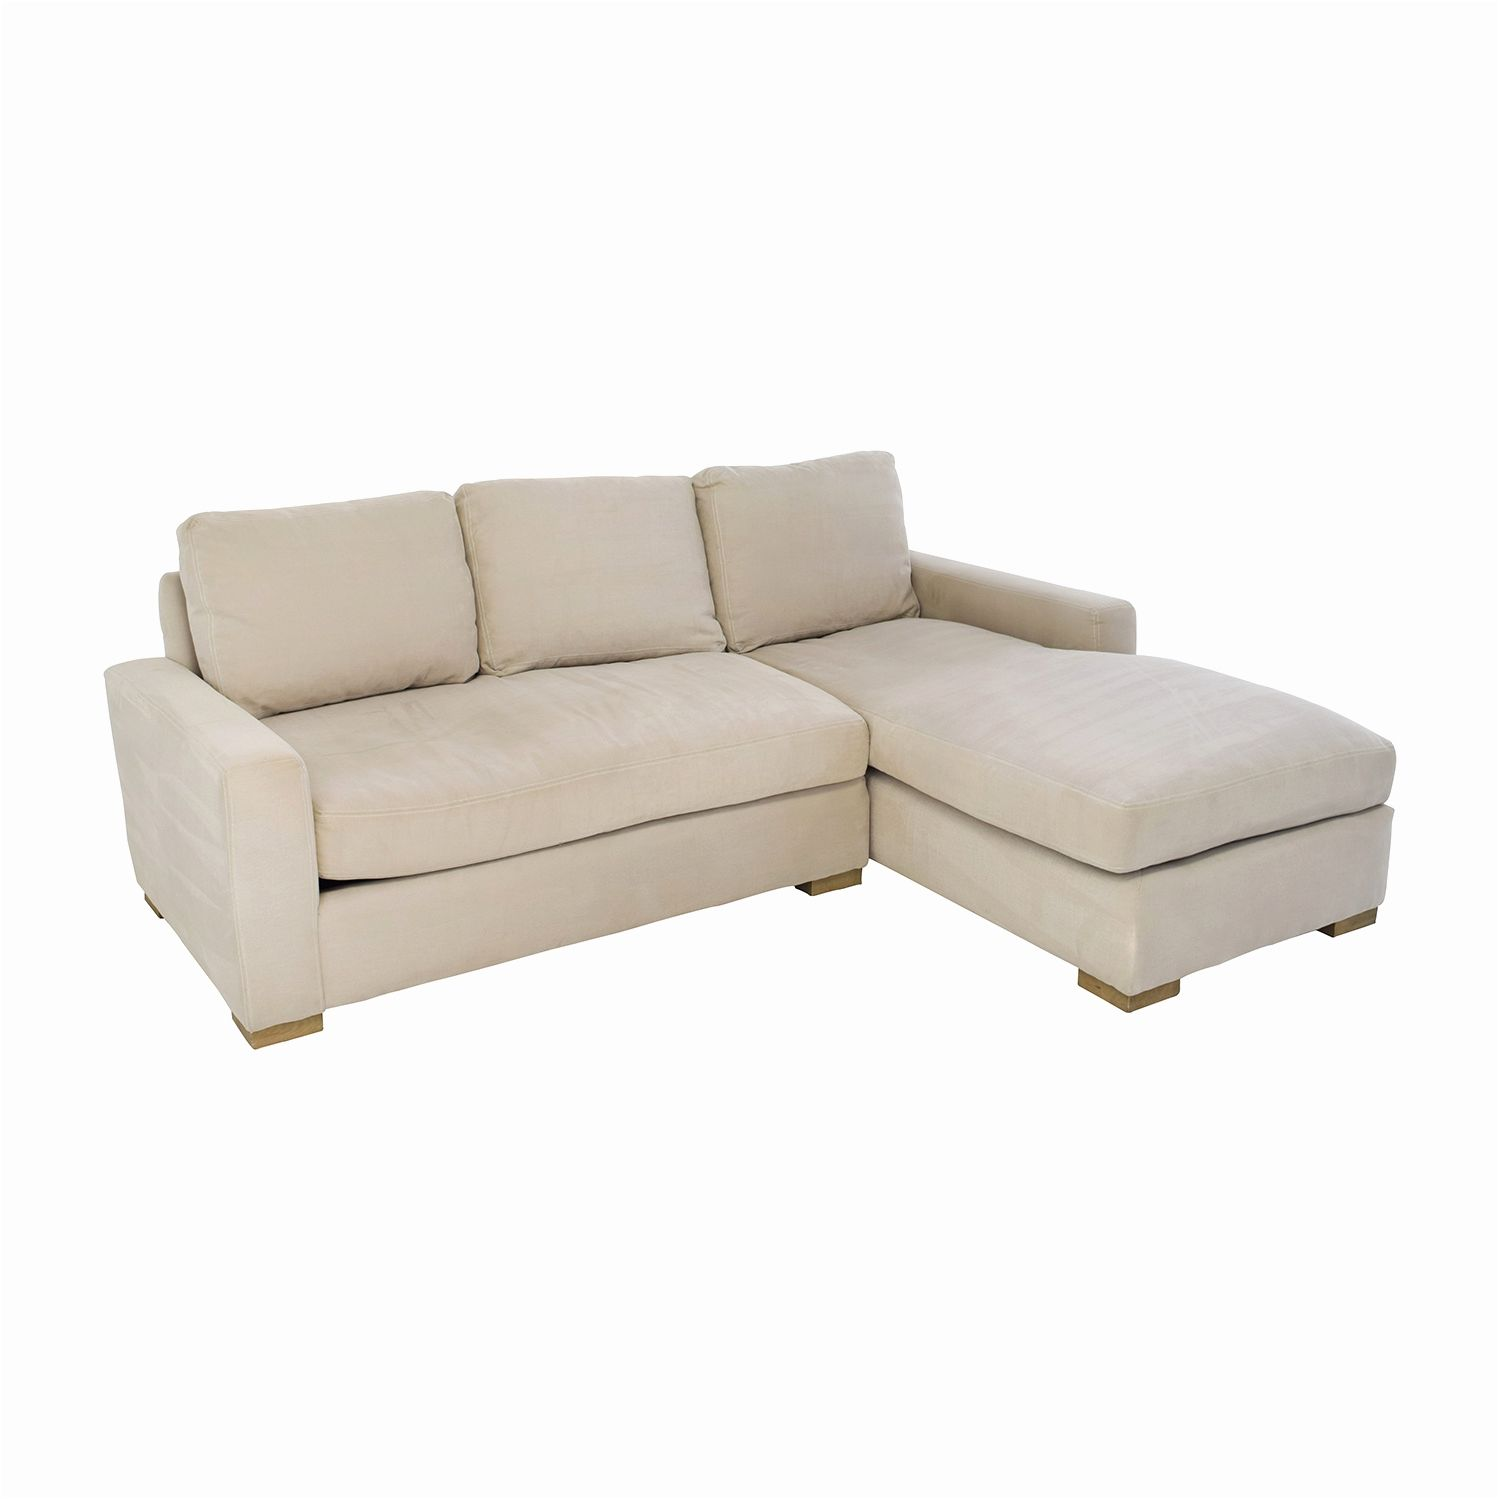 lovely memory foam sofa model-Luxury Memory Foam sofa Portrait